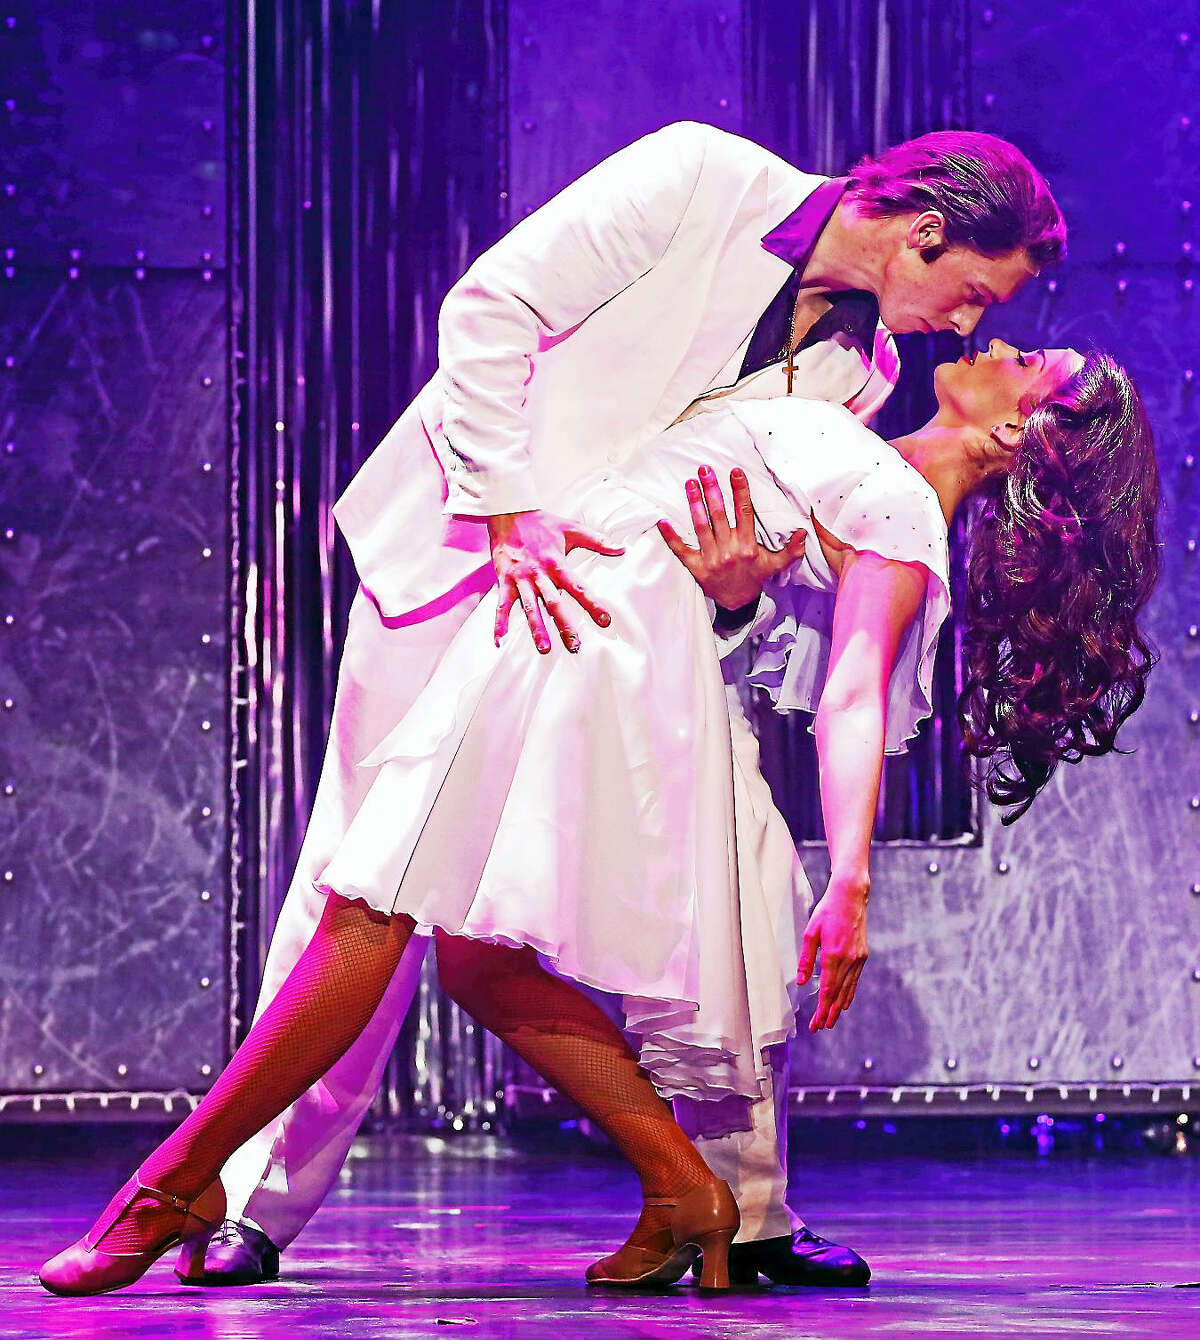 Photography by ©Erin O'Boyle PhotographicsSaturday Night Fever, the 70s disco love story, takes the Palace Theater stage later in February.